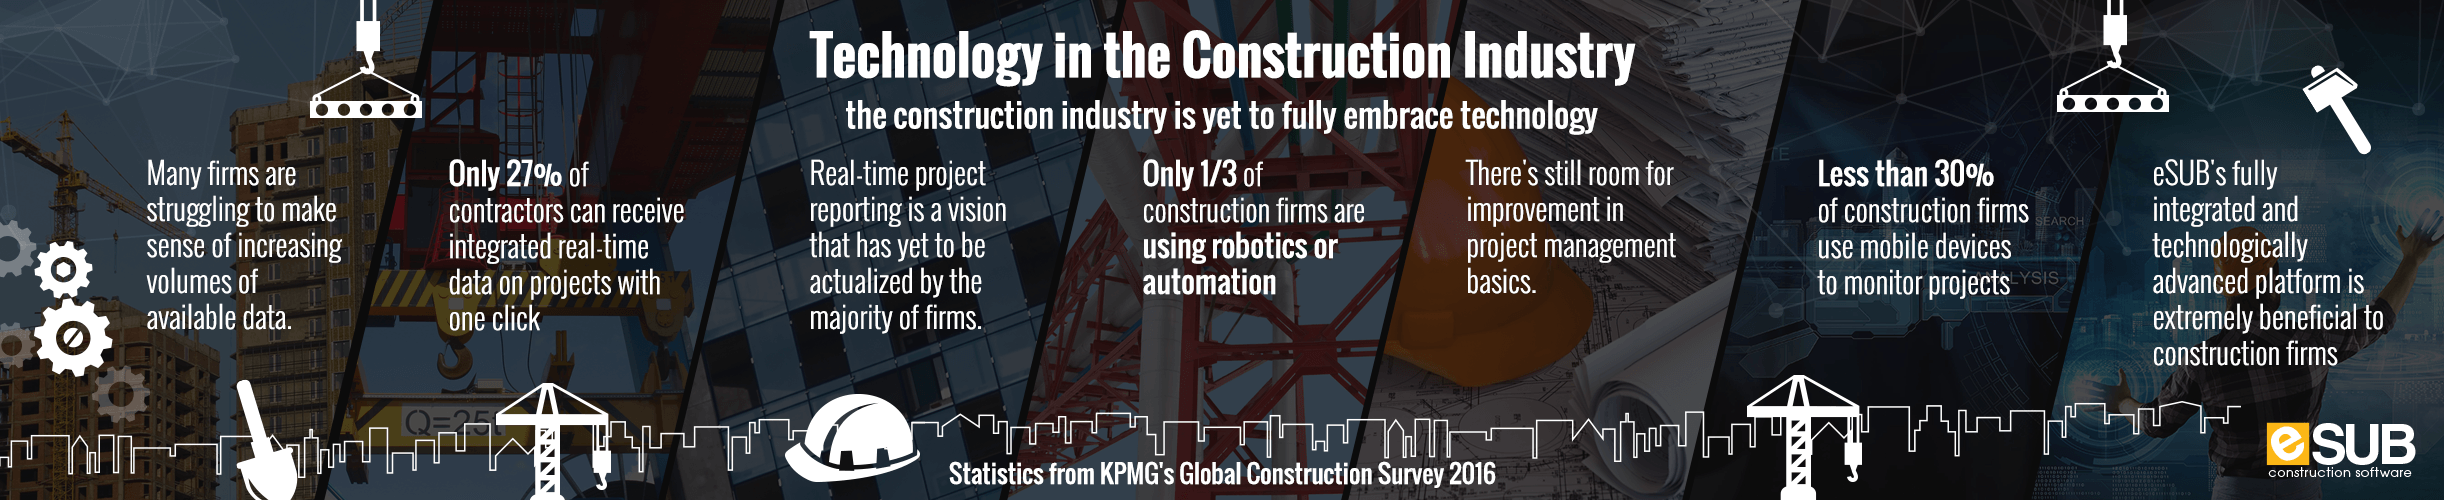 Technology in the Construction Industry eSUB Infographic